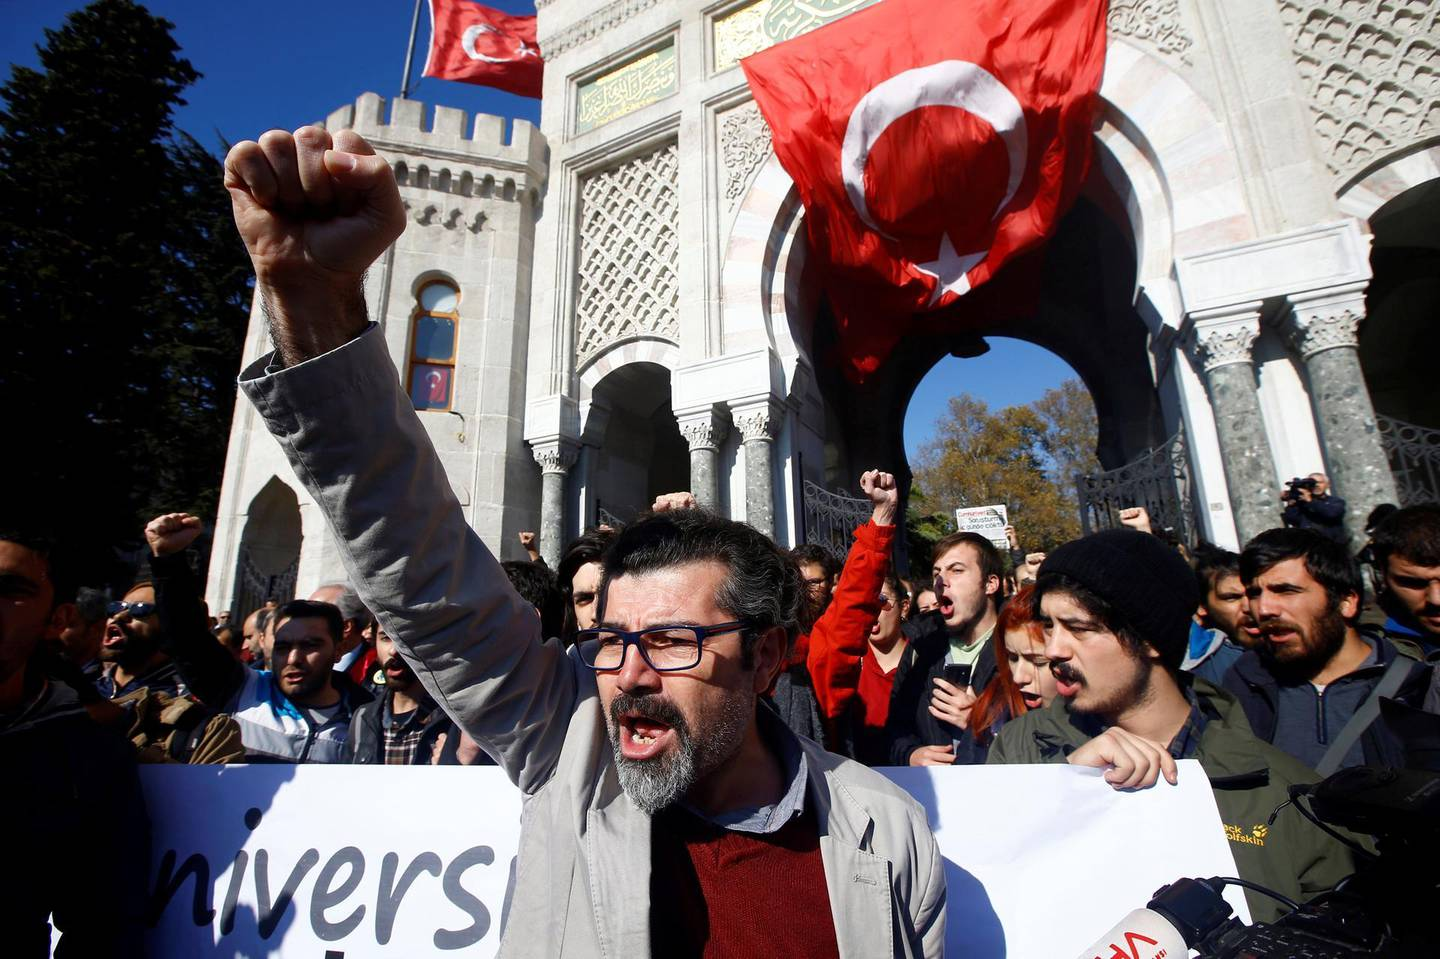 Demonstrators shout slogans during a protest against a purge of thousands of education staff since an attempted coup in July, in front of the main campus of Istanbul University at Beyazit square in Istanbul, Turkey, November 3, 2016. REUTERS/Osman Orsal - S1BEUKRUIXAA